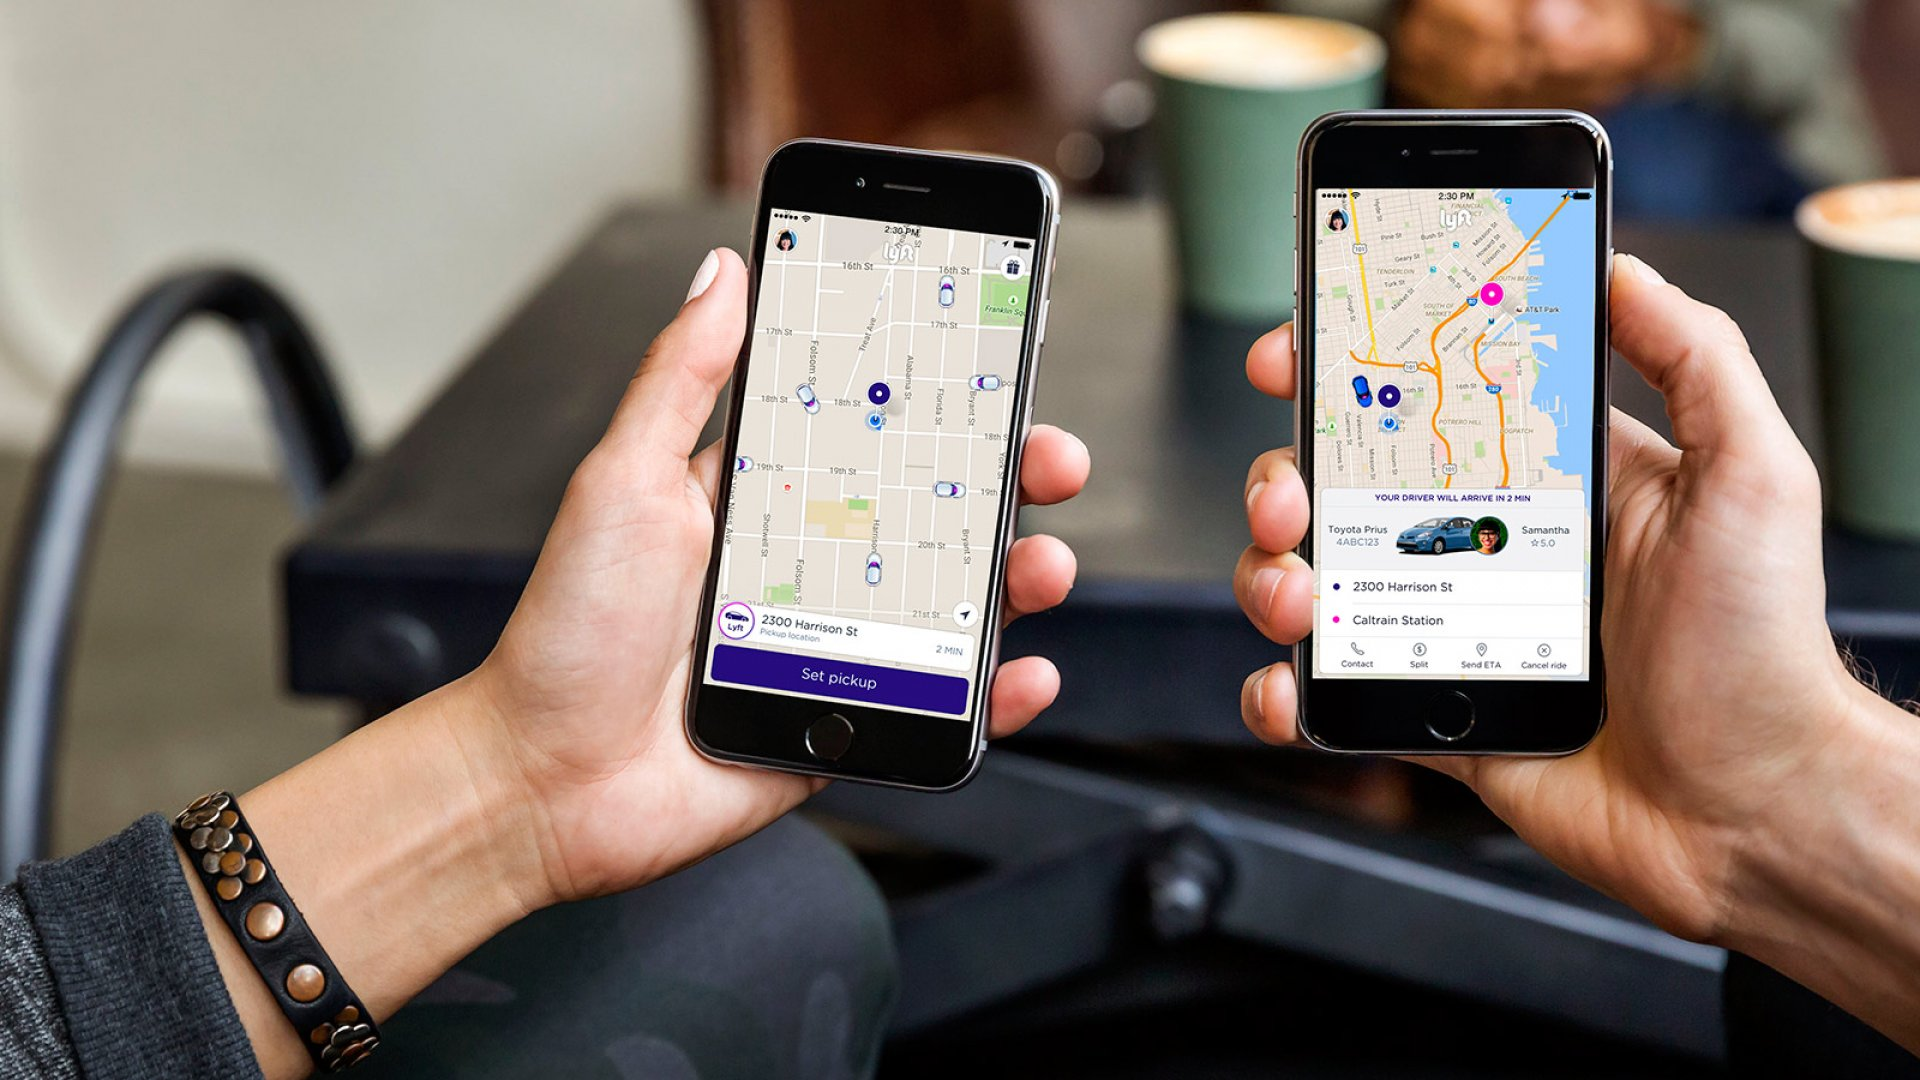 Are You a Lyft Driver or an Airbnb Host? You May Owe Taxes and Not Even Know It